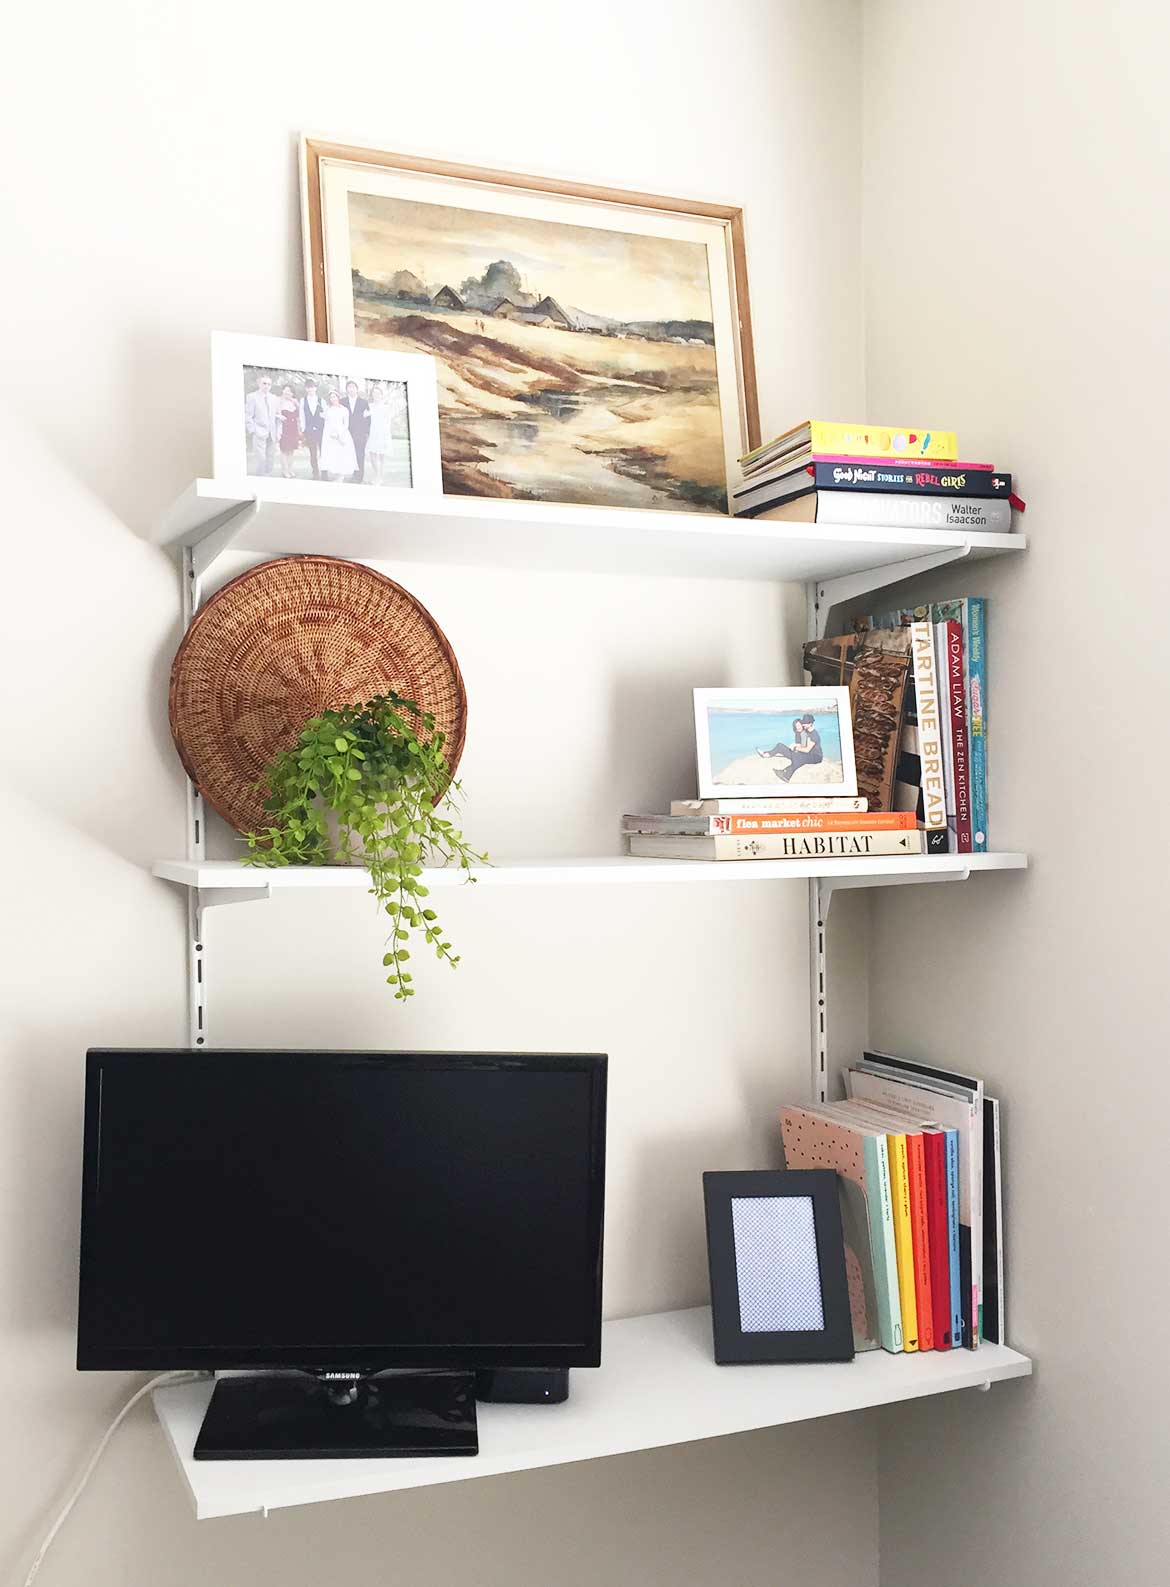 Wall shelves in our living room houses the TV as well as favourite books on rotation.